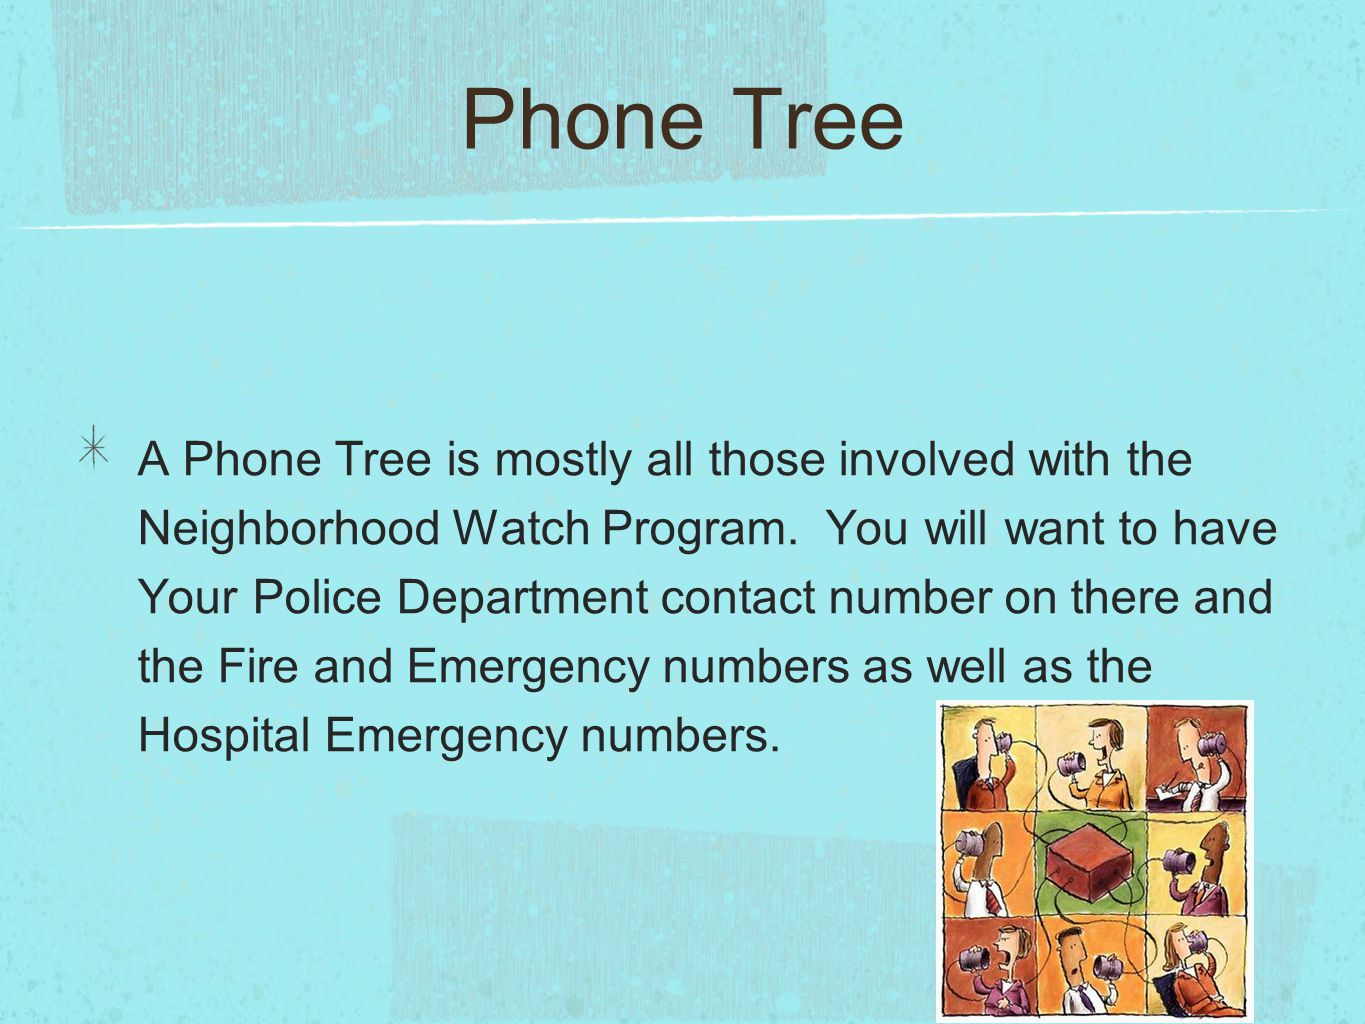 A Phone Tree is mostly all those involved with the Neighborhood Watch Program.